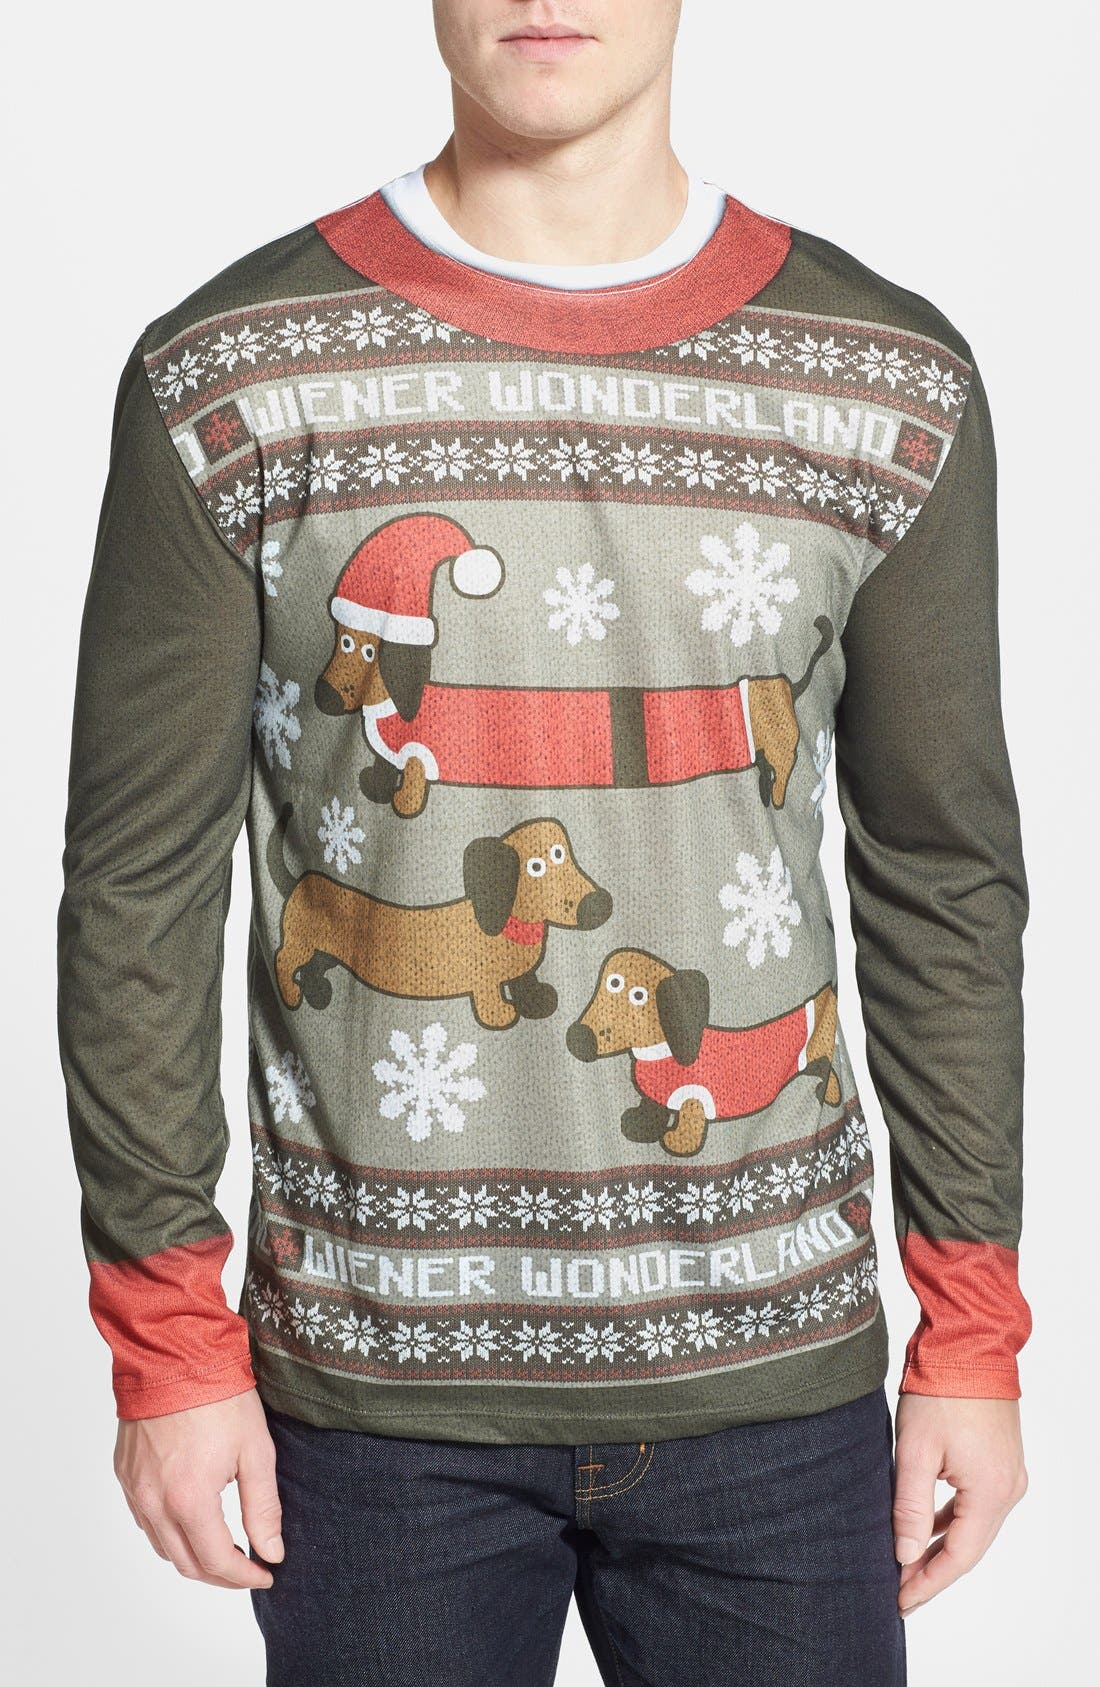 FAUX REAL 'Wiener Wonderland' Ugly Christmas Long Sleeve Novelty T-Shirt, Main, color, 200